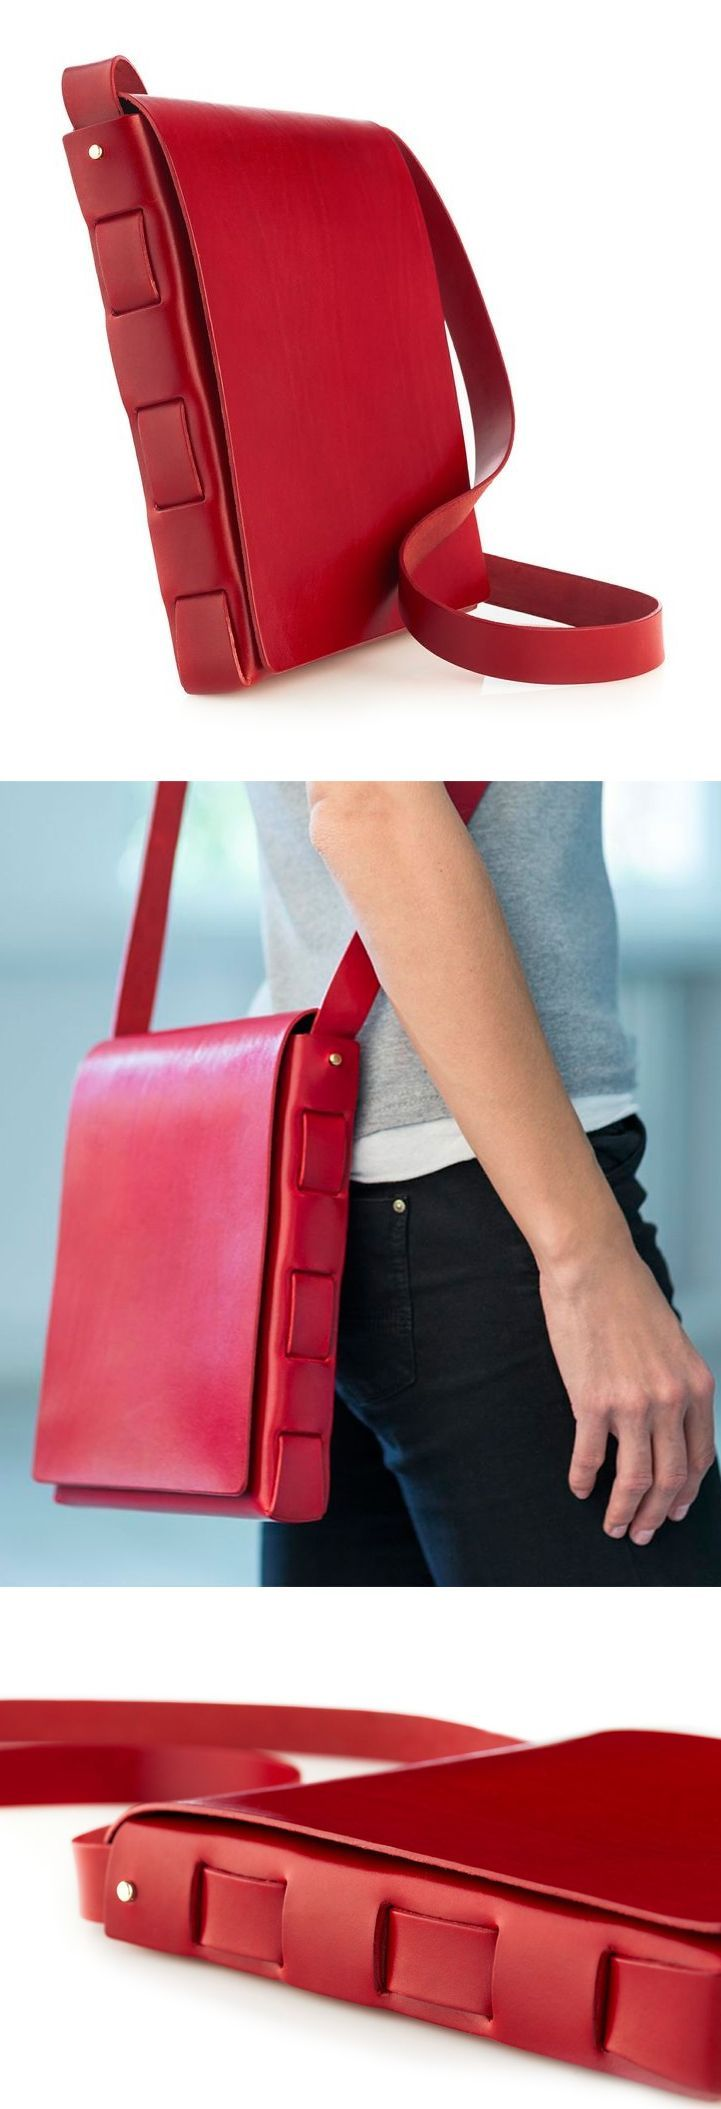 Stitchless bag // crafted from 2 pieces of leather with NO stitching, I love the elegant + simple construction!: